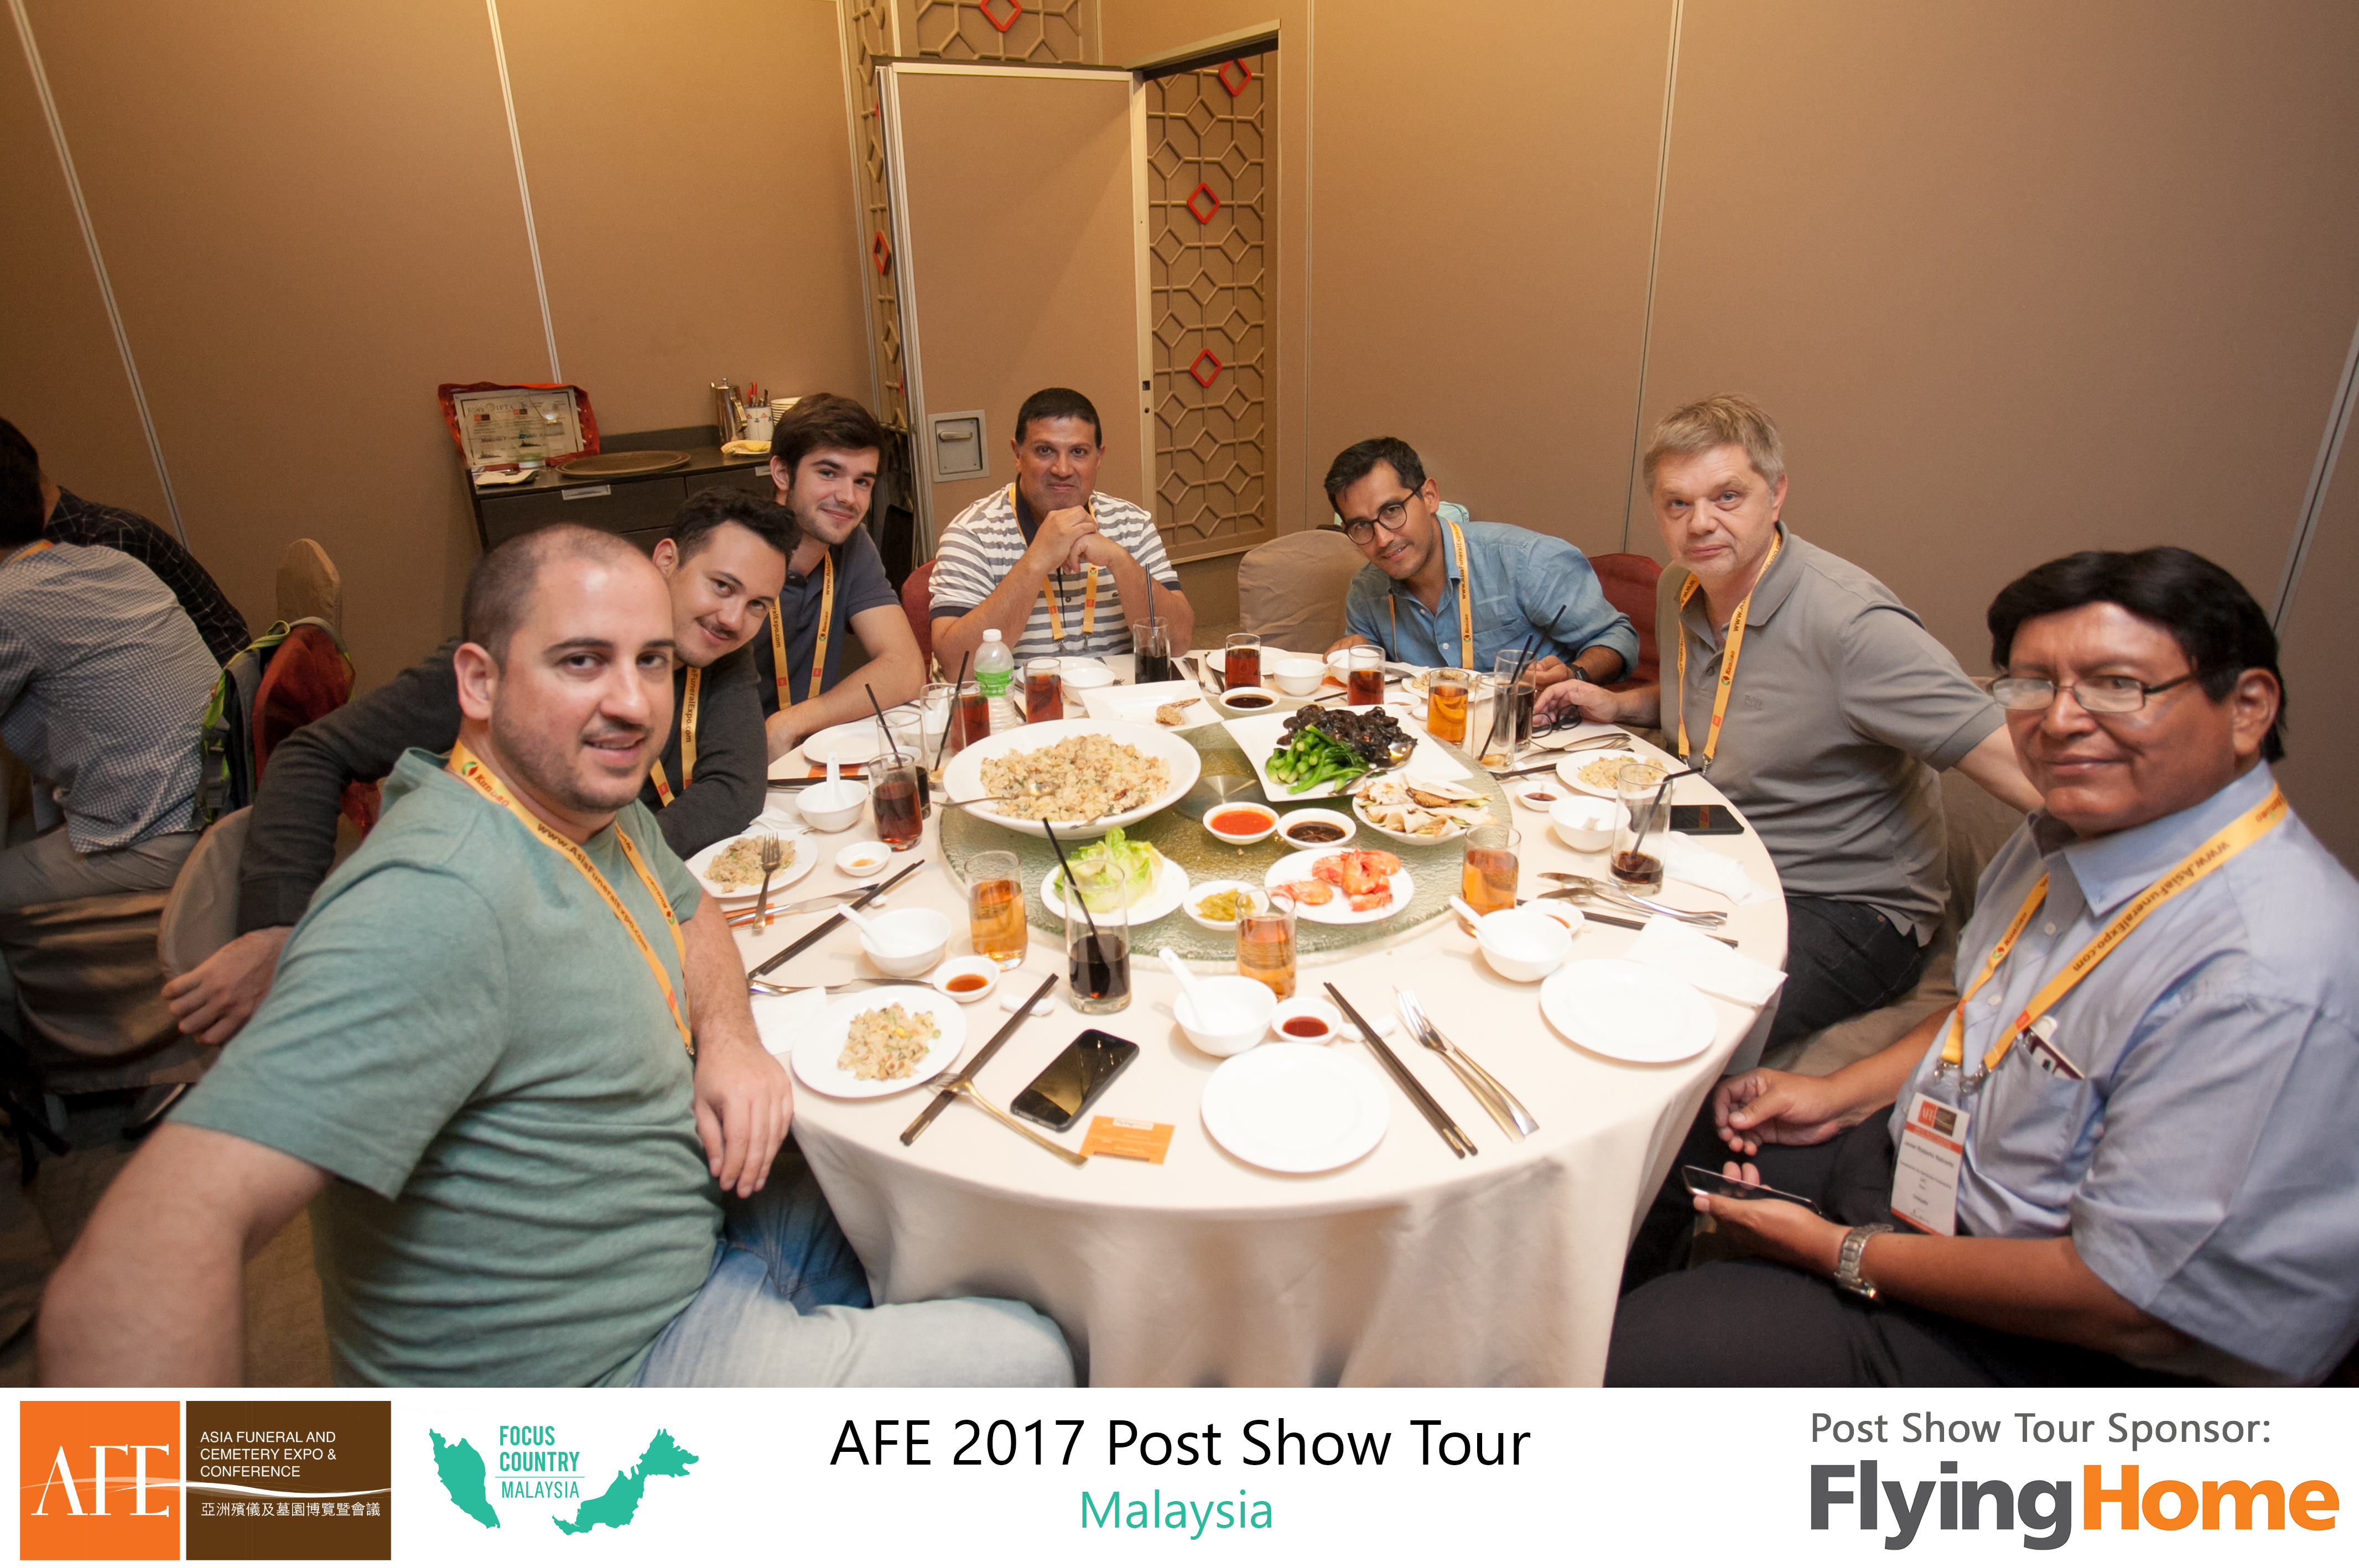 AFE Post Show Tour 2017 Day 1 - 21